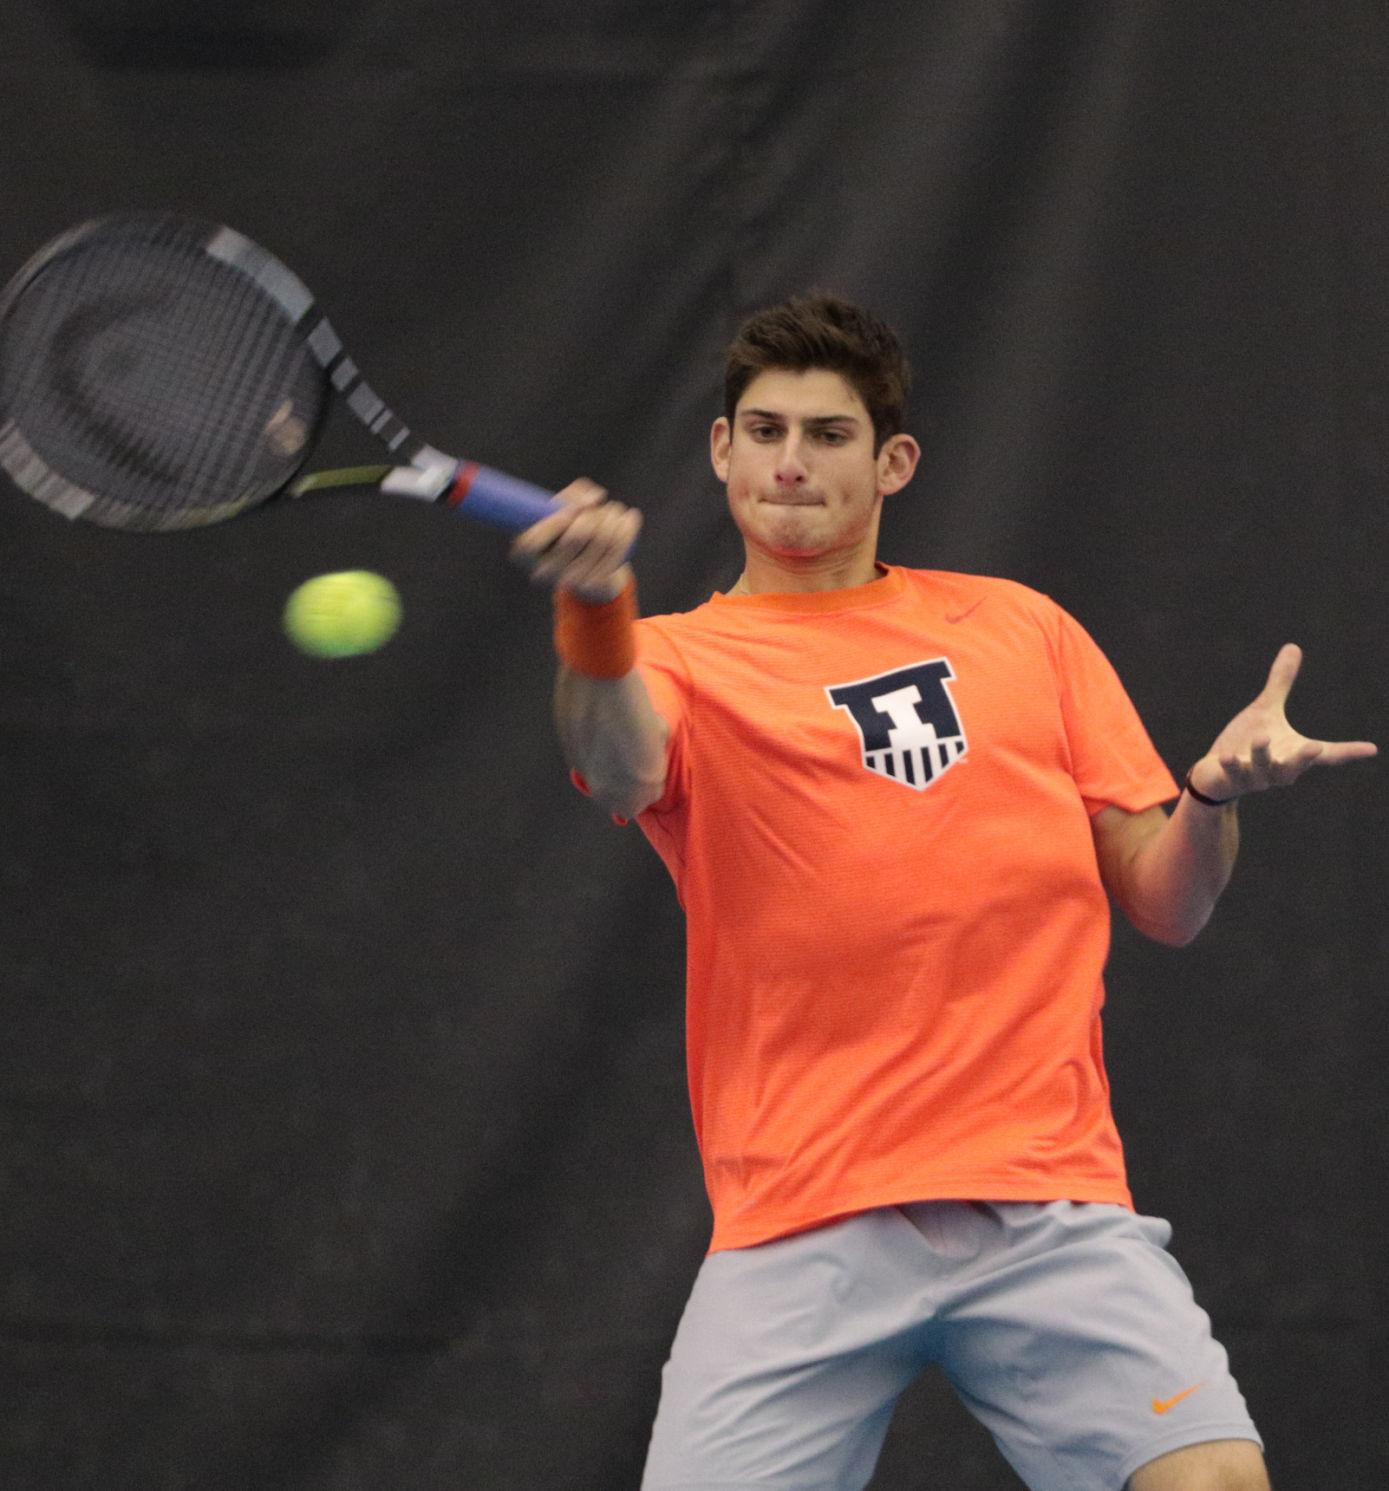 Illinois' Jared Hiltzik makes a return during the tennis game v. Northwestern at Atkins Tennis Center on Friday, Feb. 20. Illinois won 5-2.